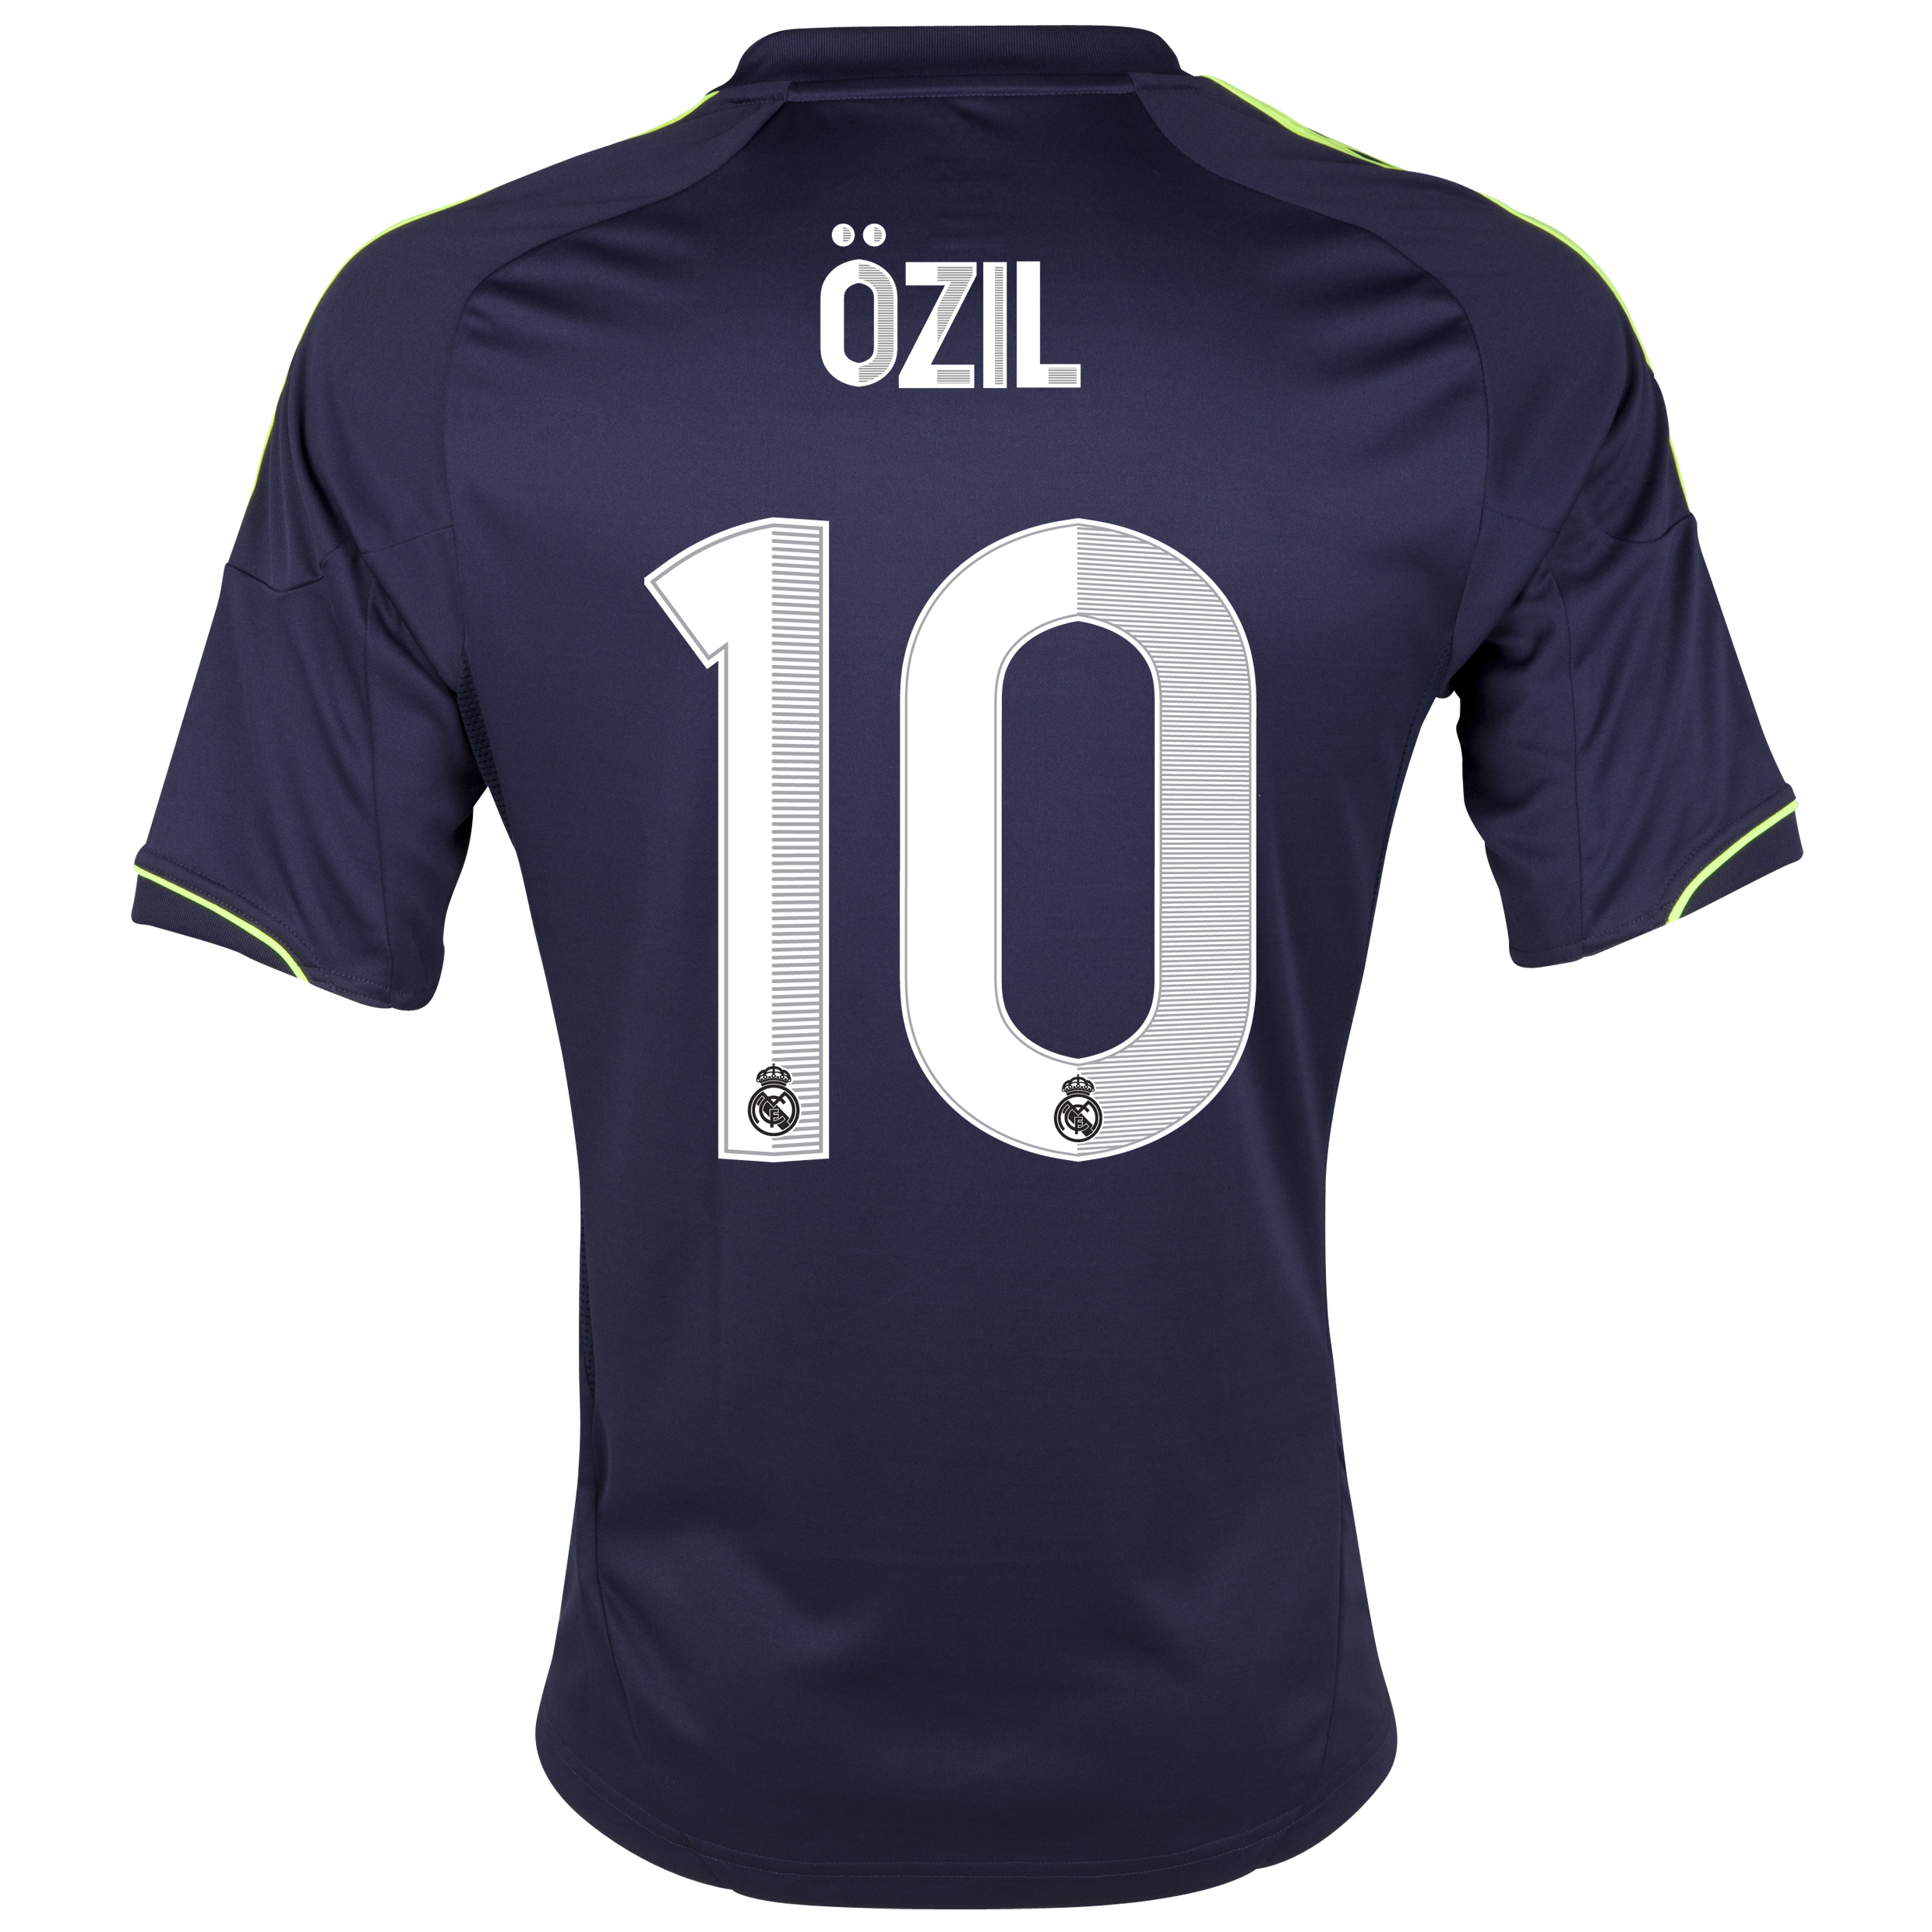 Real Madrid Away Shirt 2012/13 with Özil 10 printing